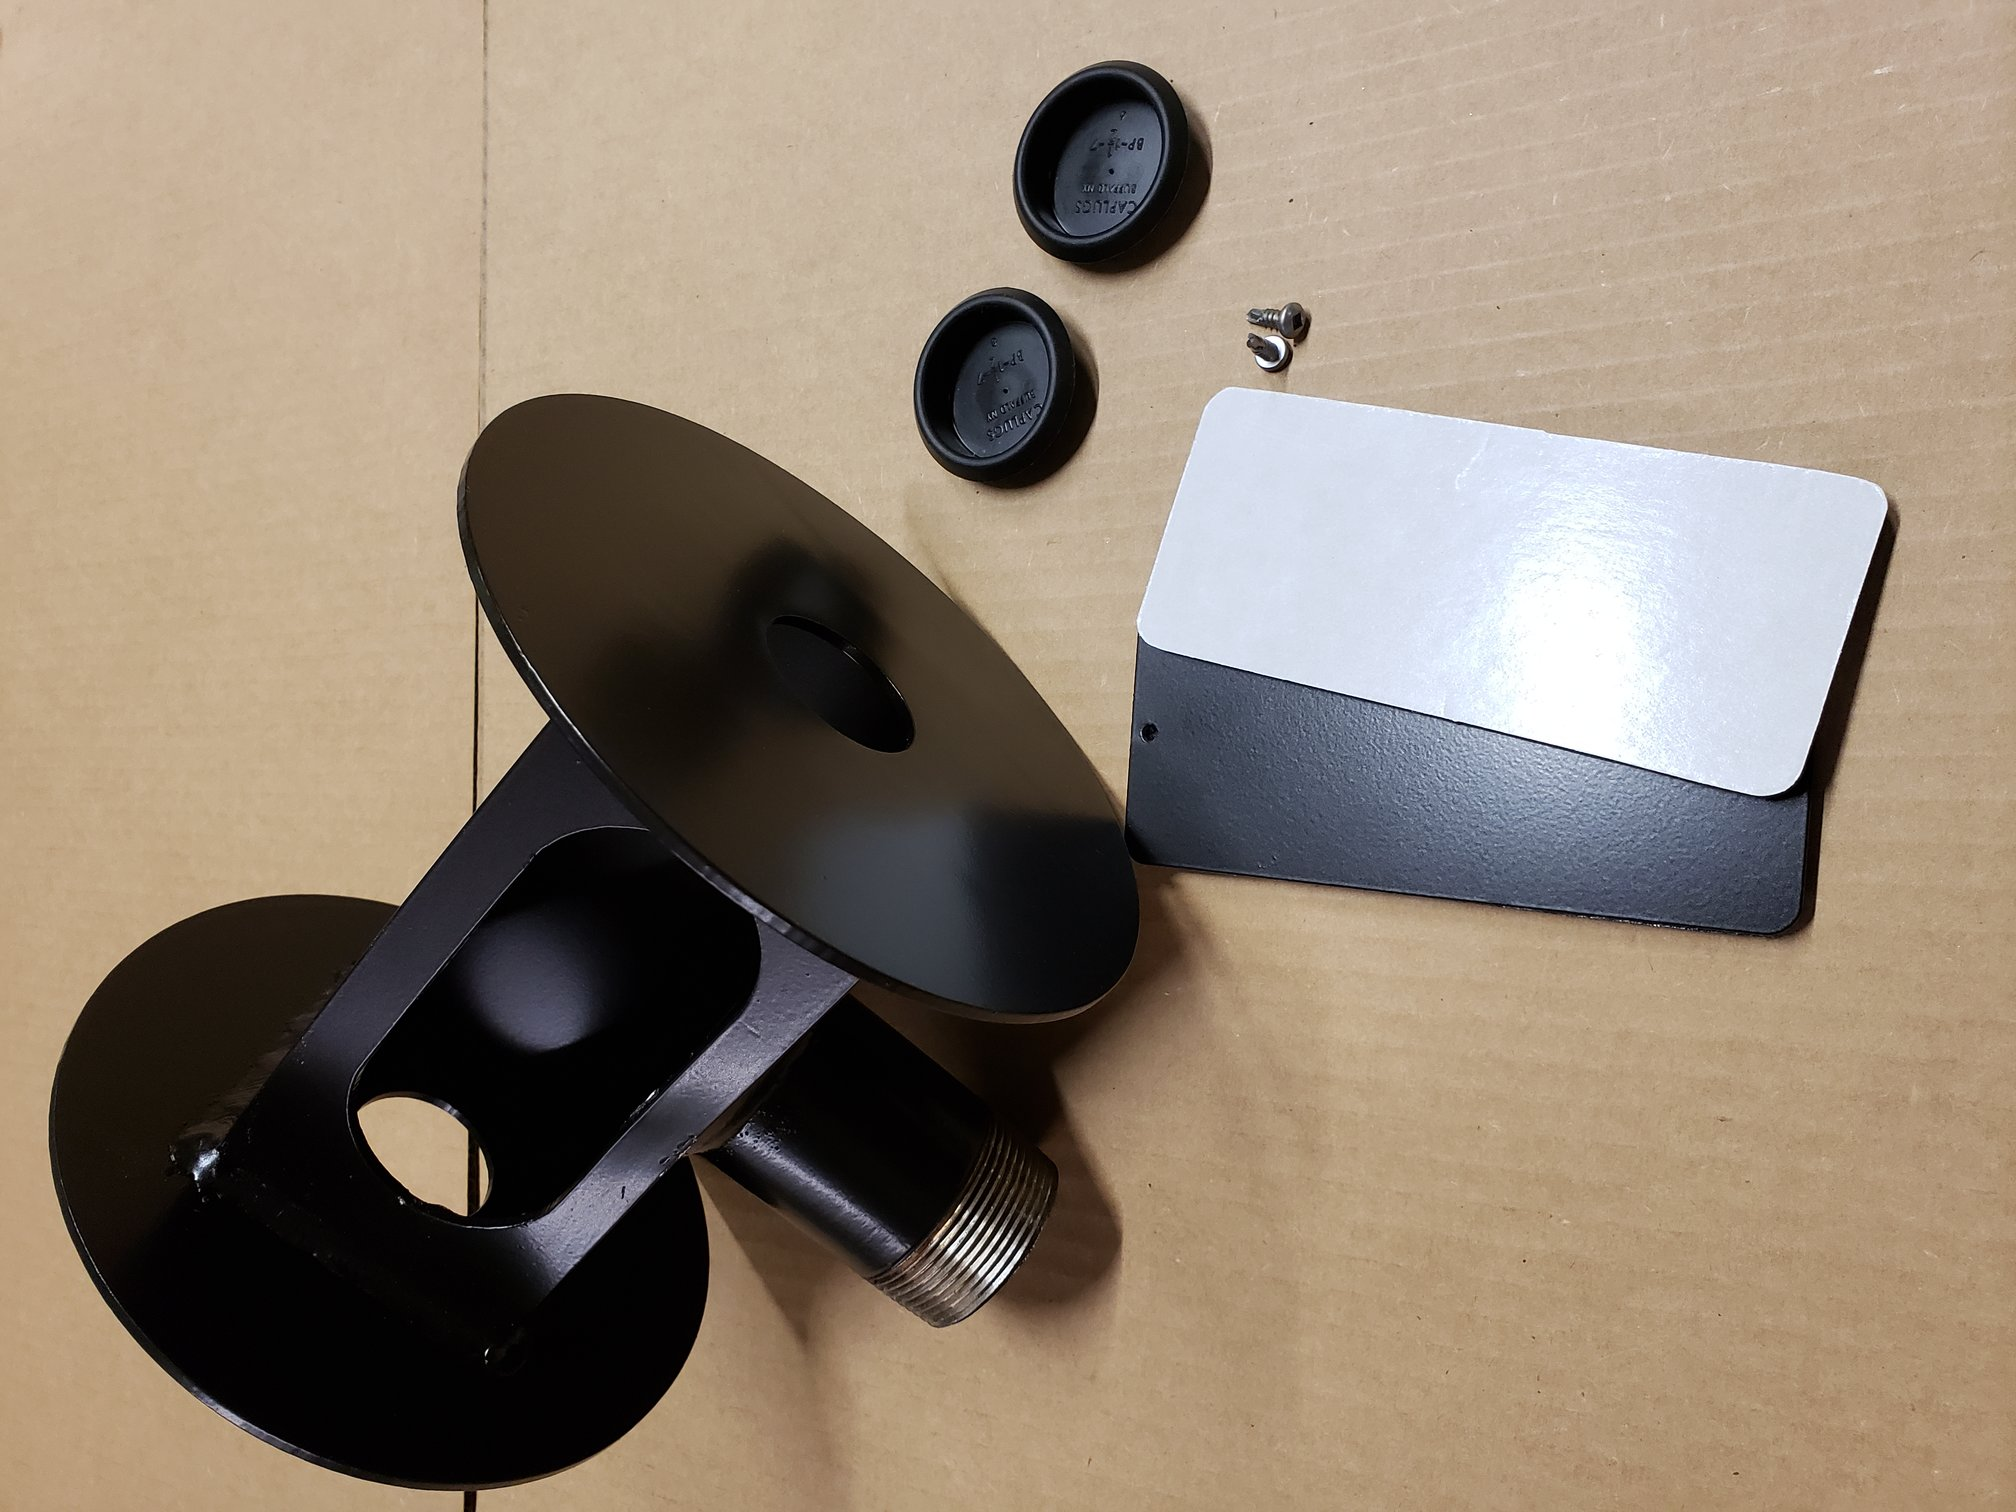 dual dome and bullet adapter w kit resize - Built strong to provide a sturdy, steady security camera mounting platform